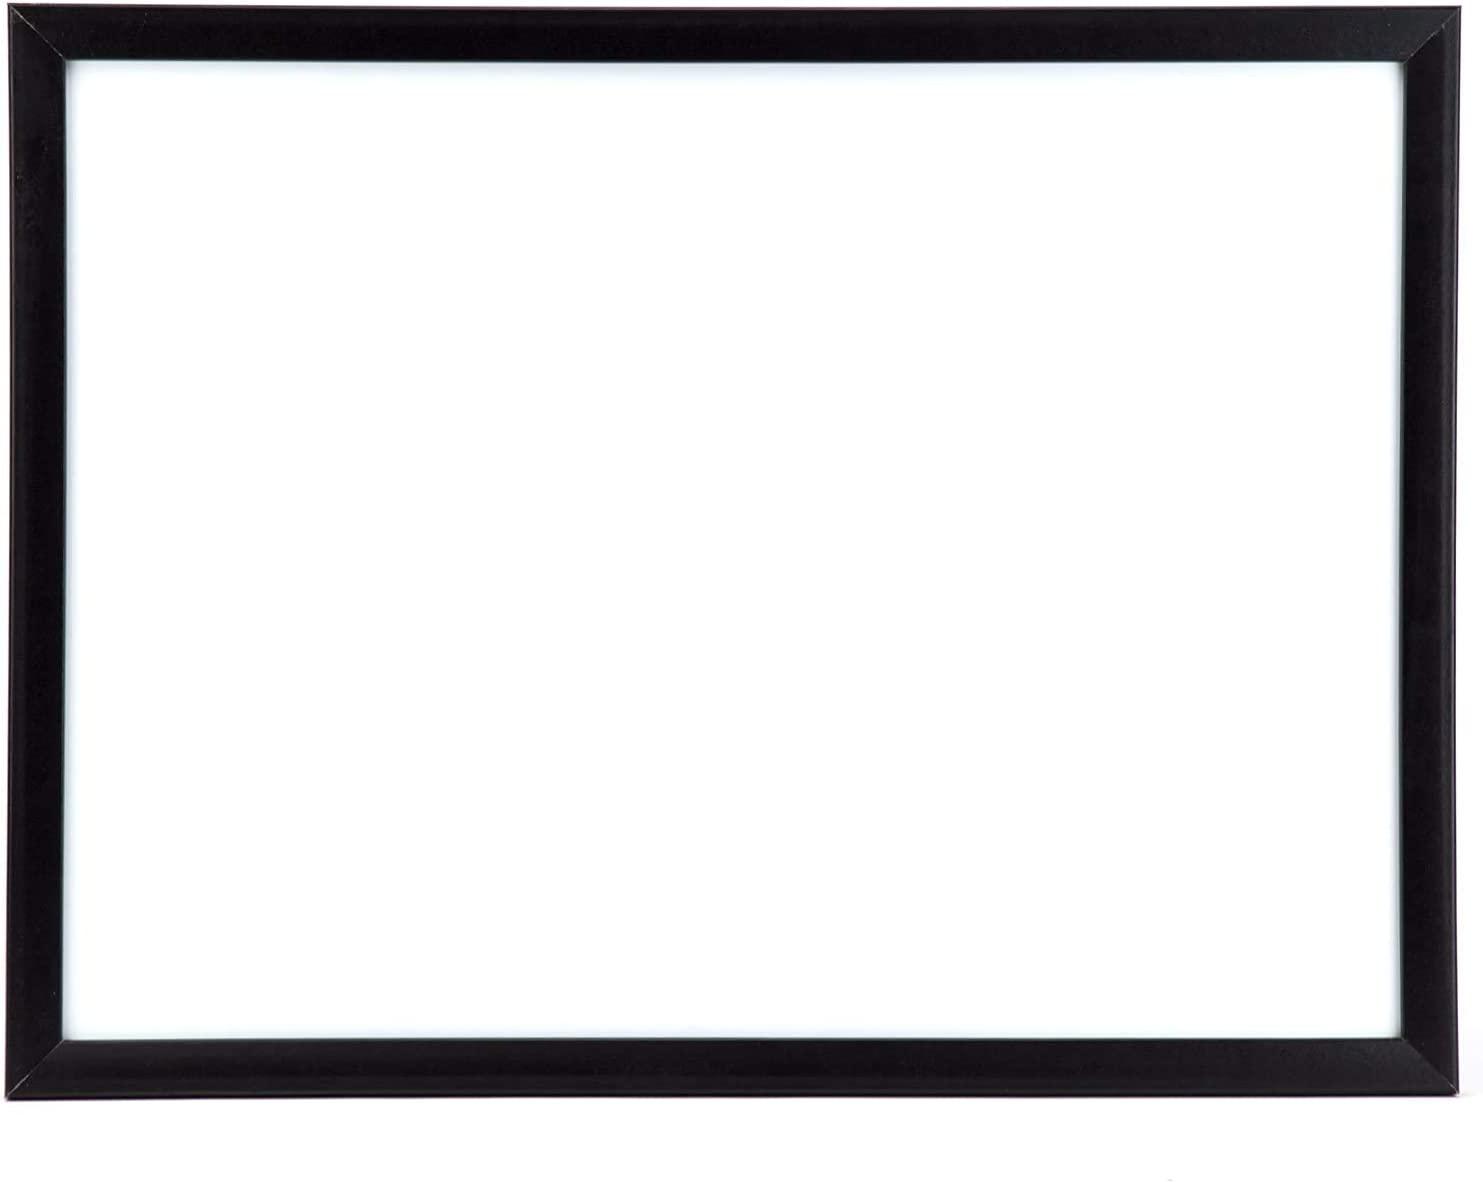 U Surprise price Brands Magnetic Dry Erase Board 17 23 Fr Black Inches Same day shipping Wood x